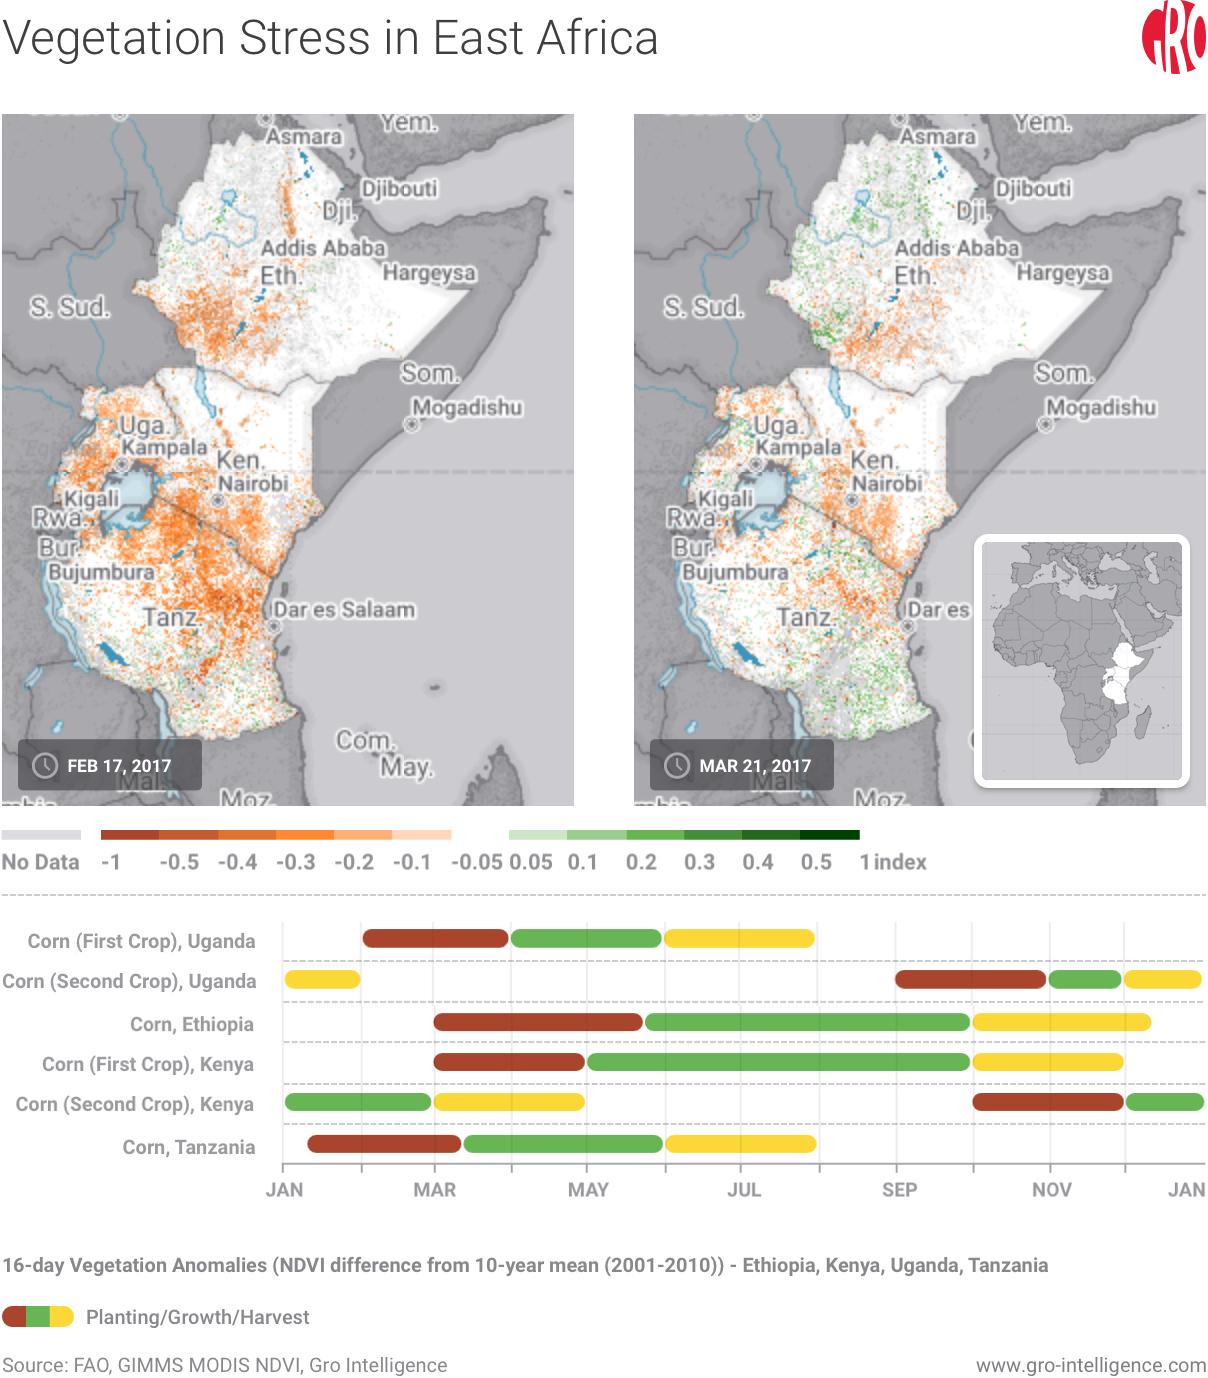 Vegetation Stress in East Africa